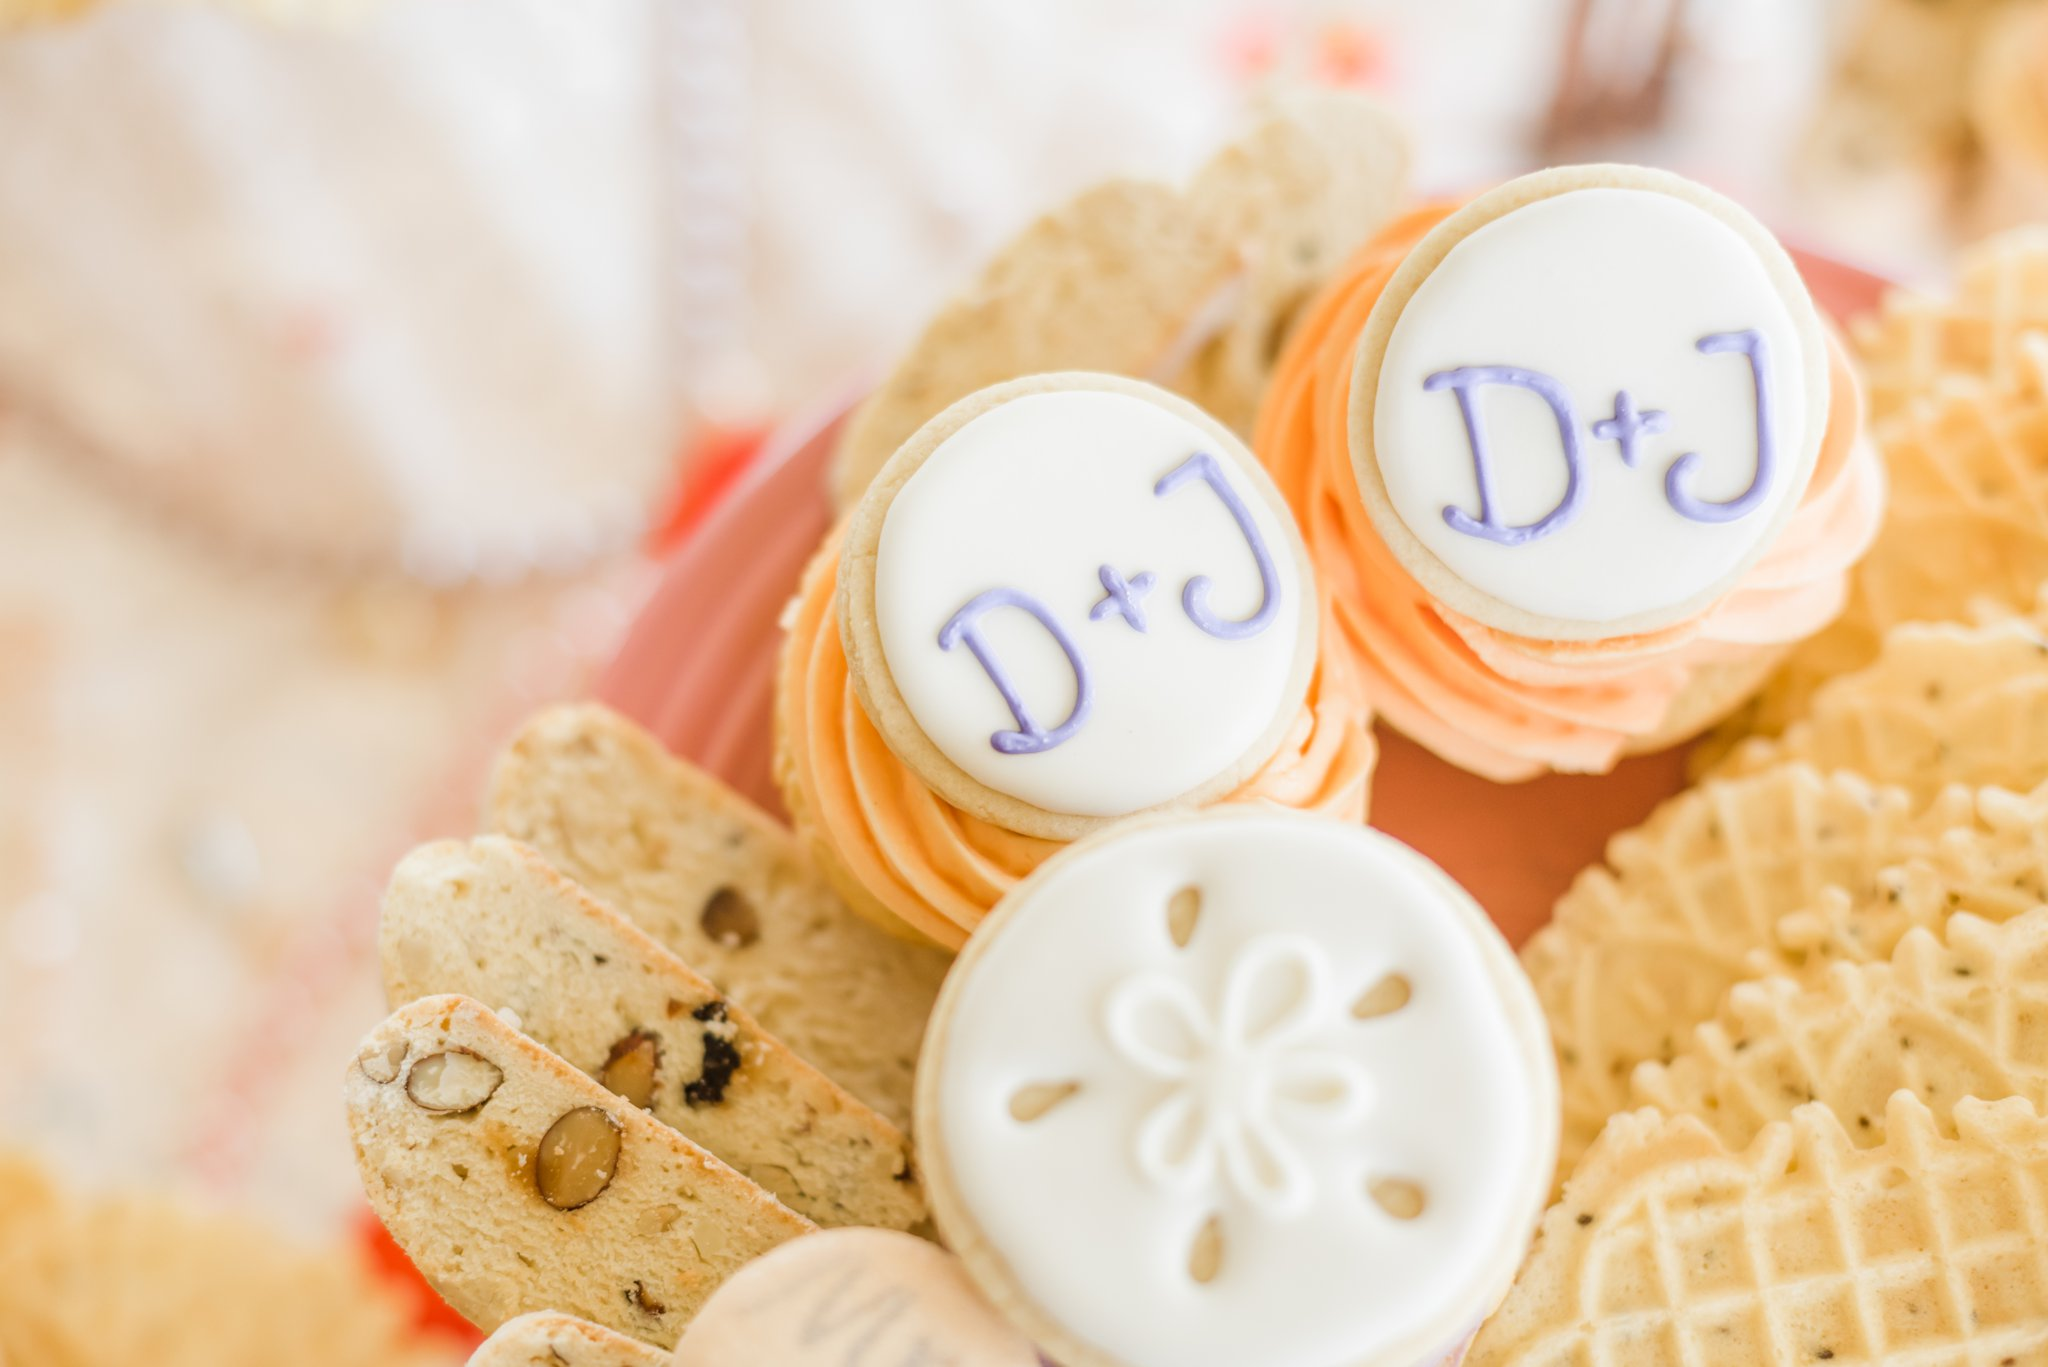 They had such a sweet dinner after their ceremony. The desserts consisted of sand dollar cookies, homemade cupcakes by Jenn's niece, and my favorite cookies.... Macarons!!!